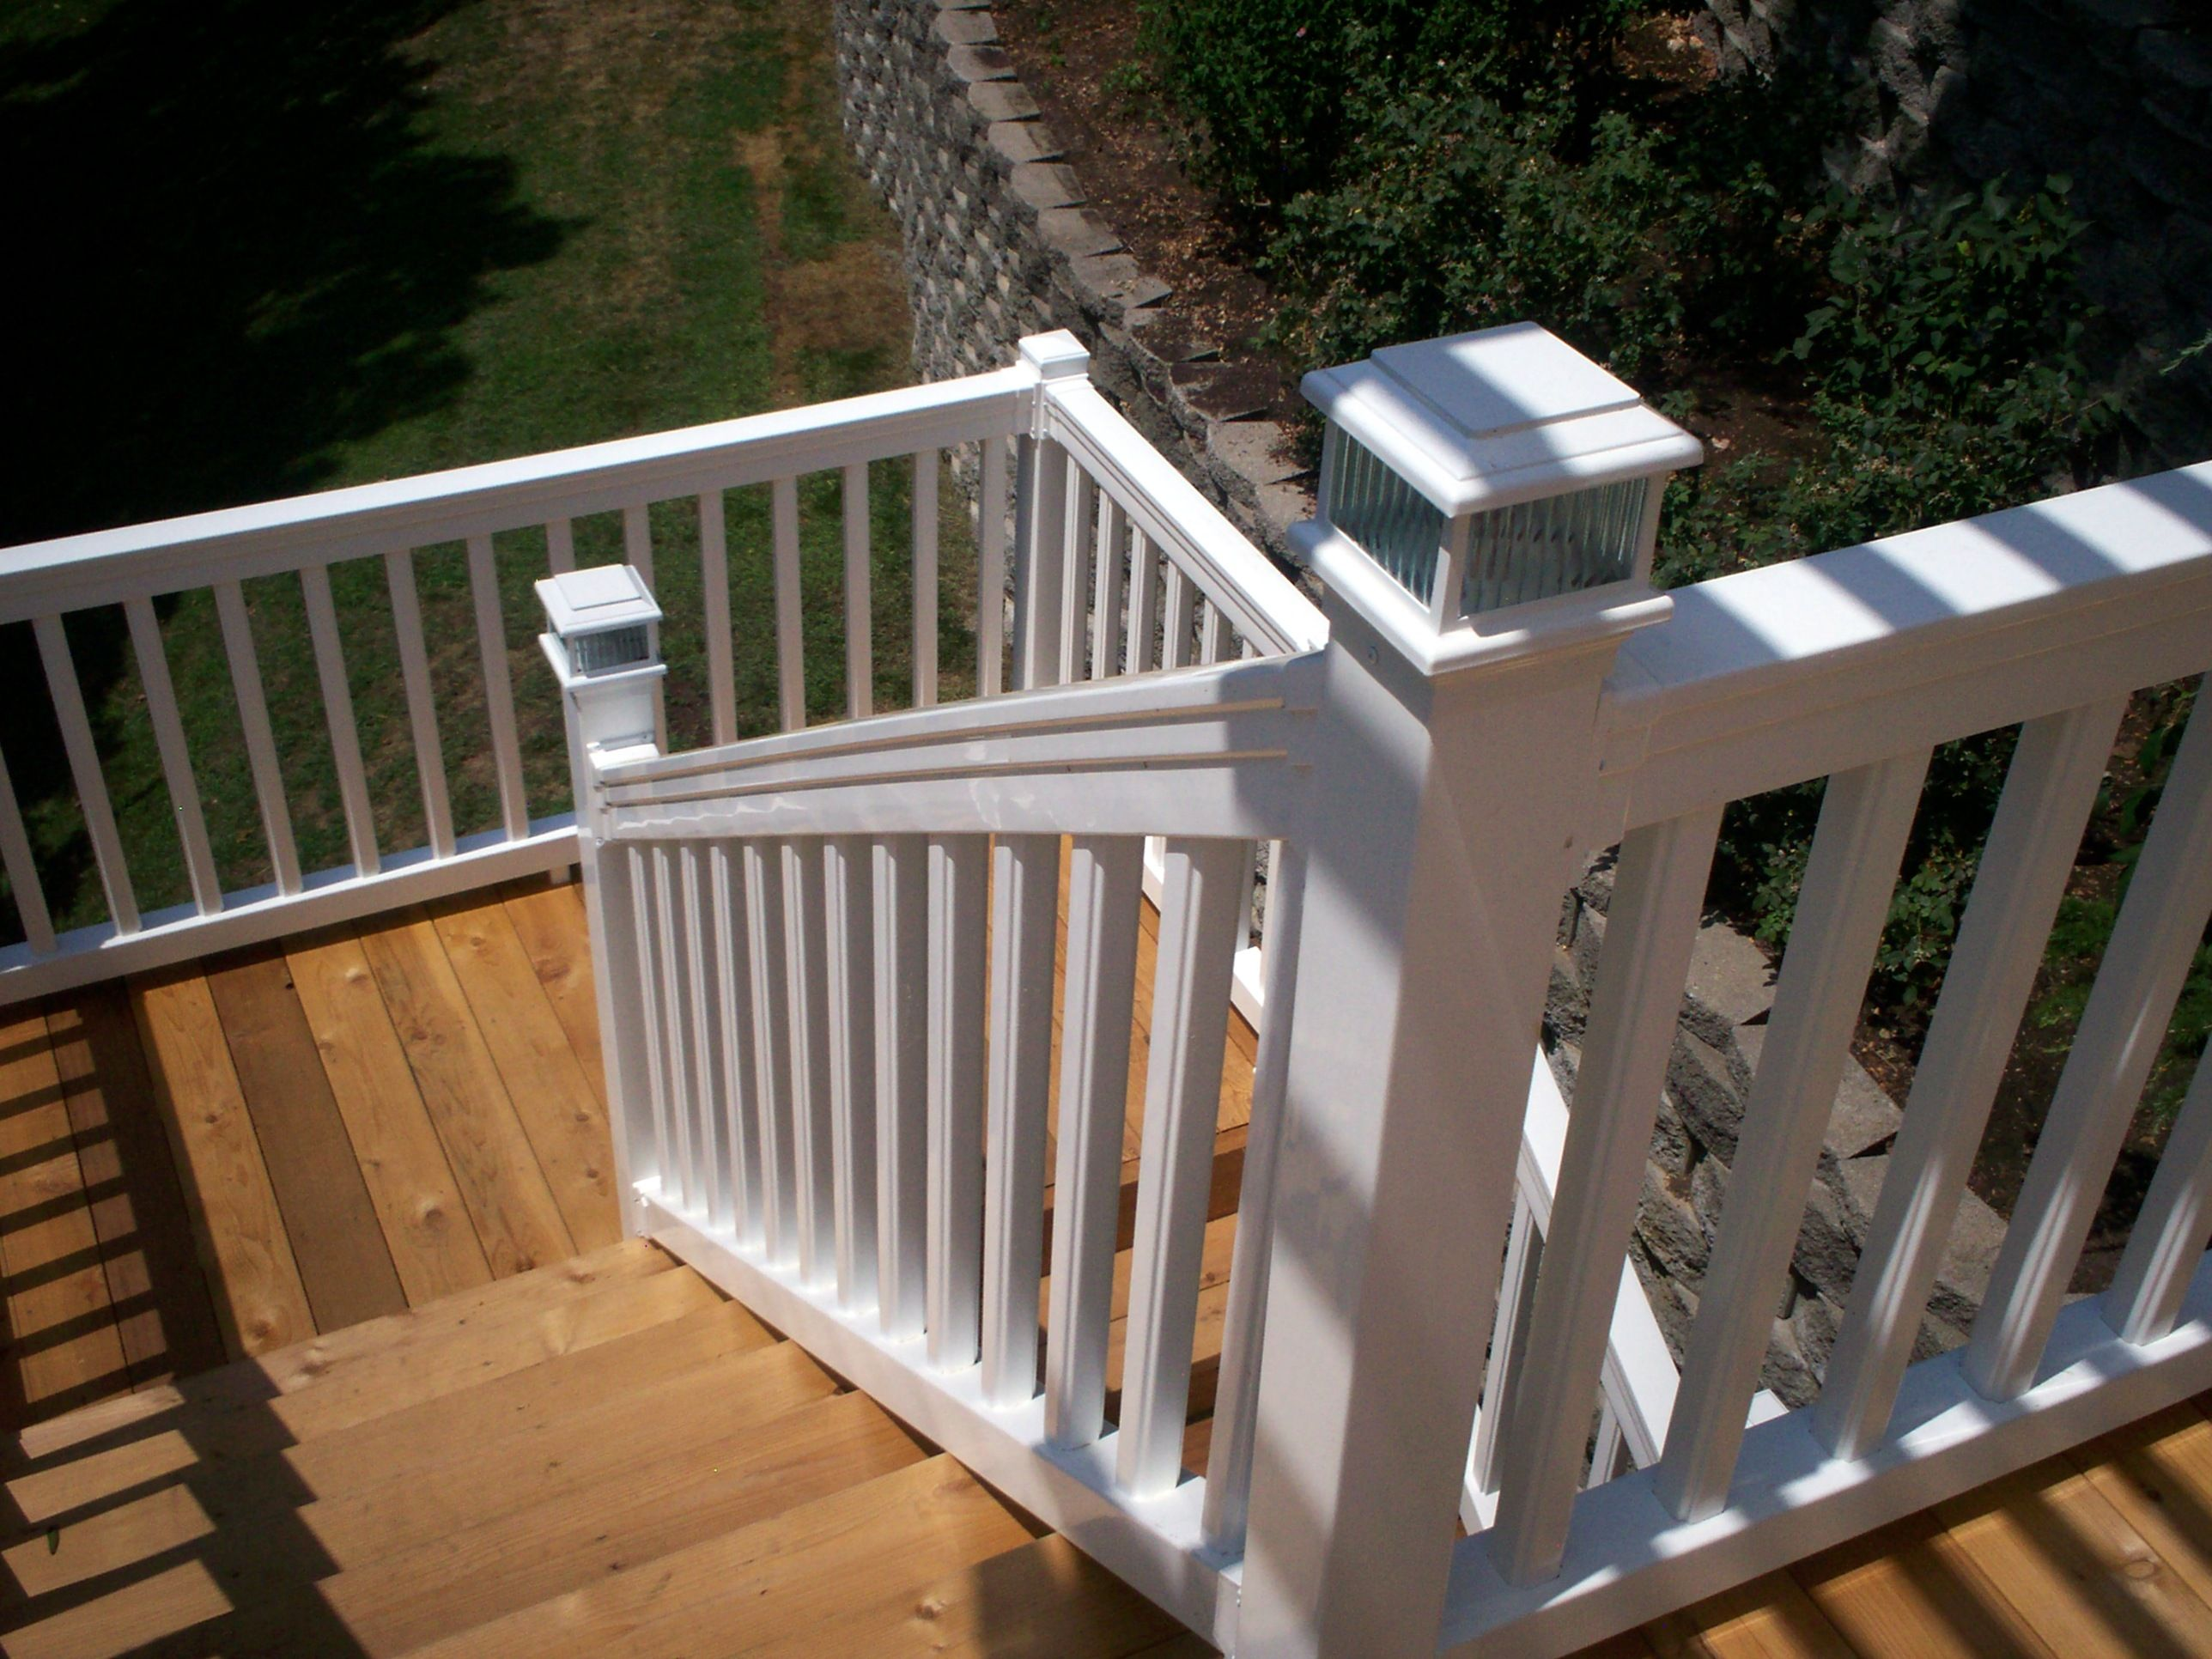 Decks without railing designs ideas wrought iron railing explore deck stairs deck railings and more baanklon Images